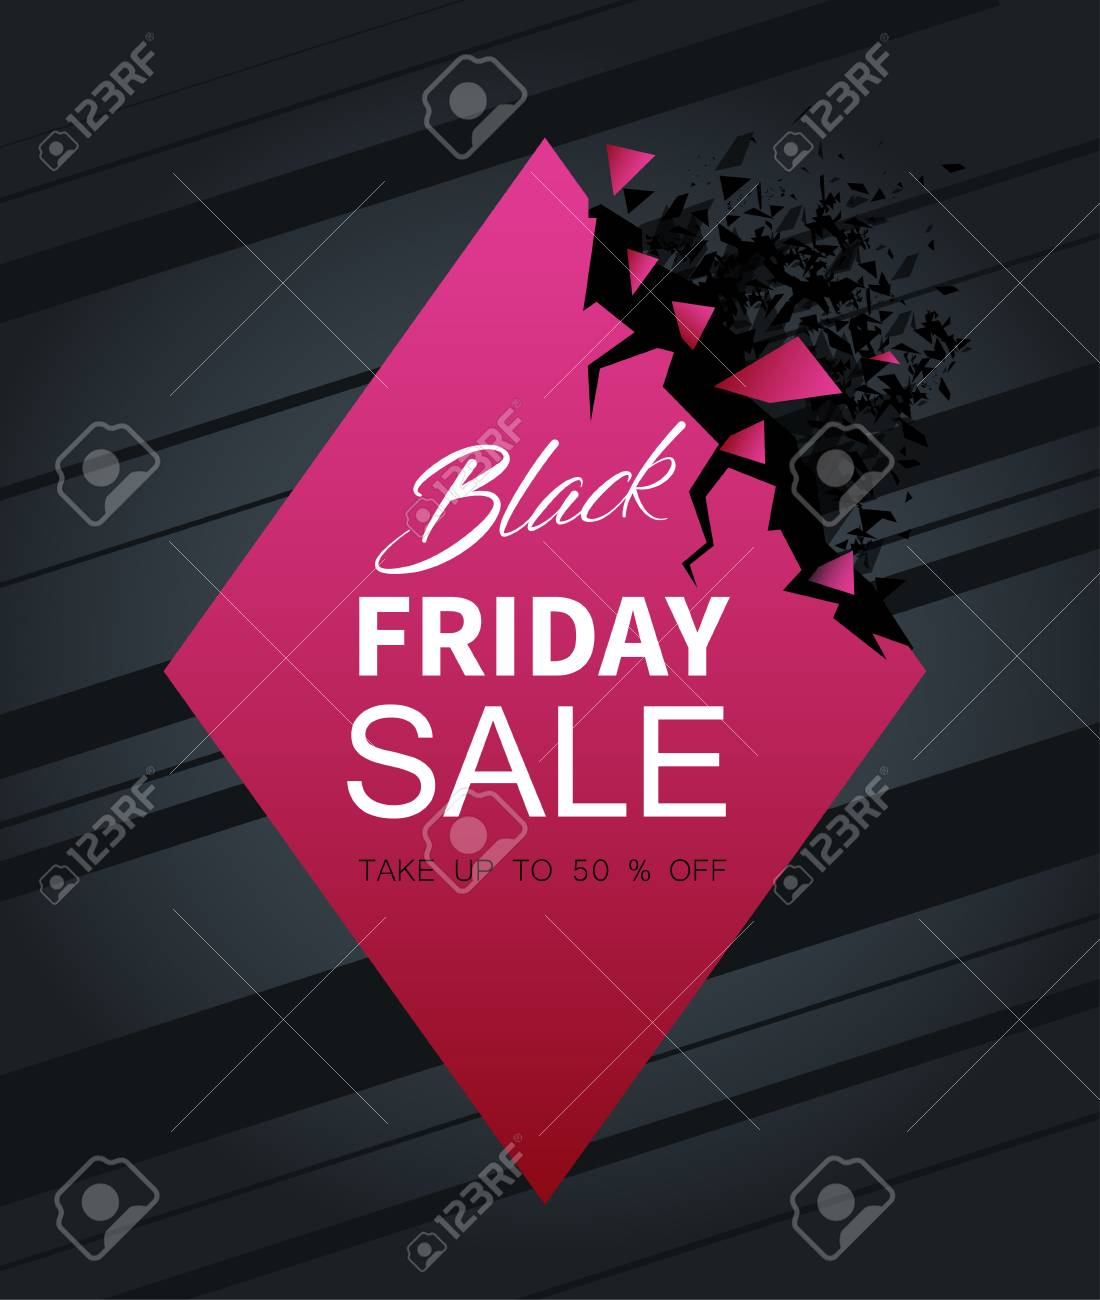 7715b2ecfc Black friday sale pink abstract poster. Up to 50 percent off. Promotion or  advertising